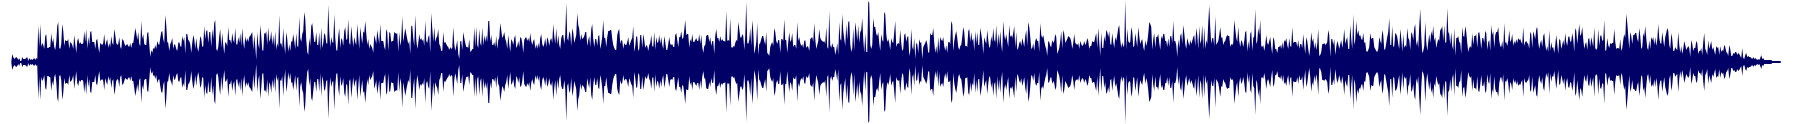 waveform of track #69440